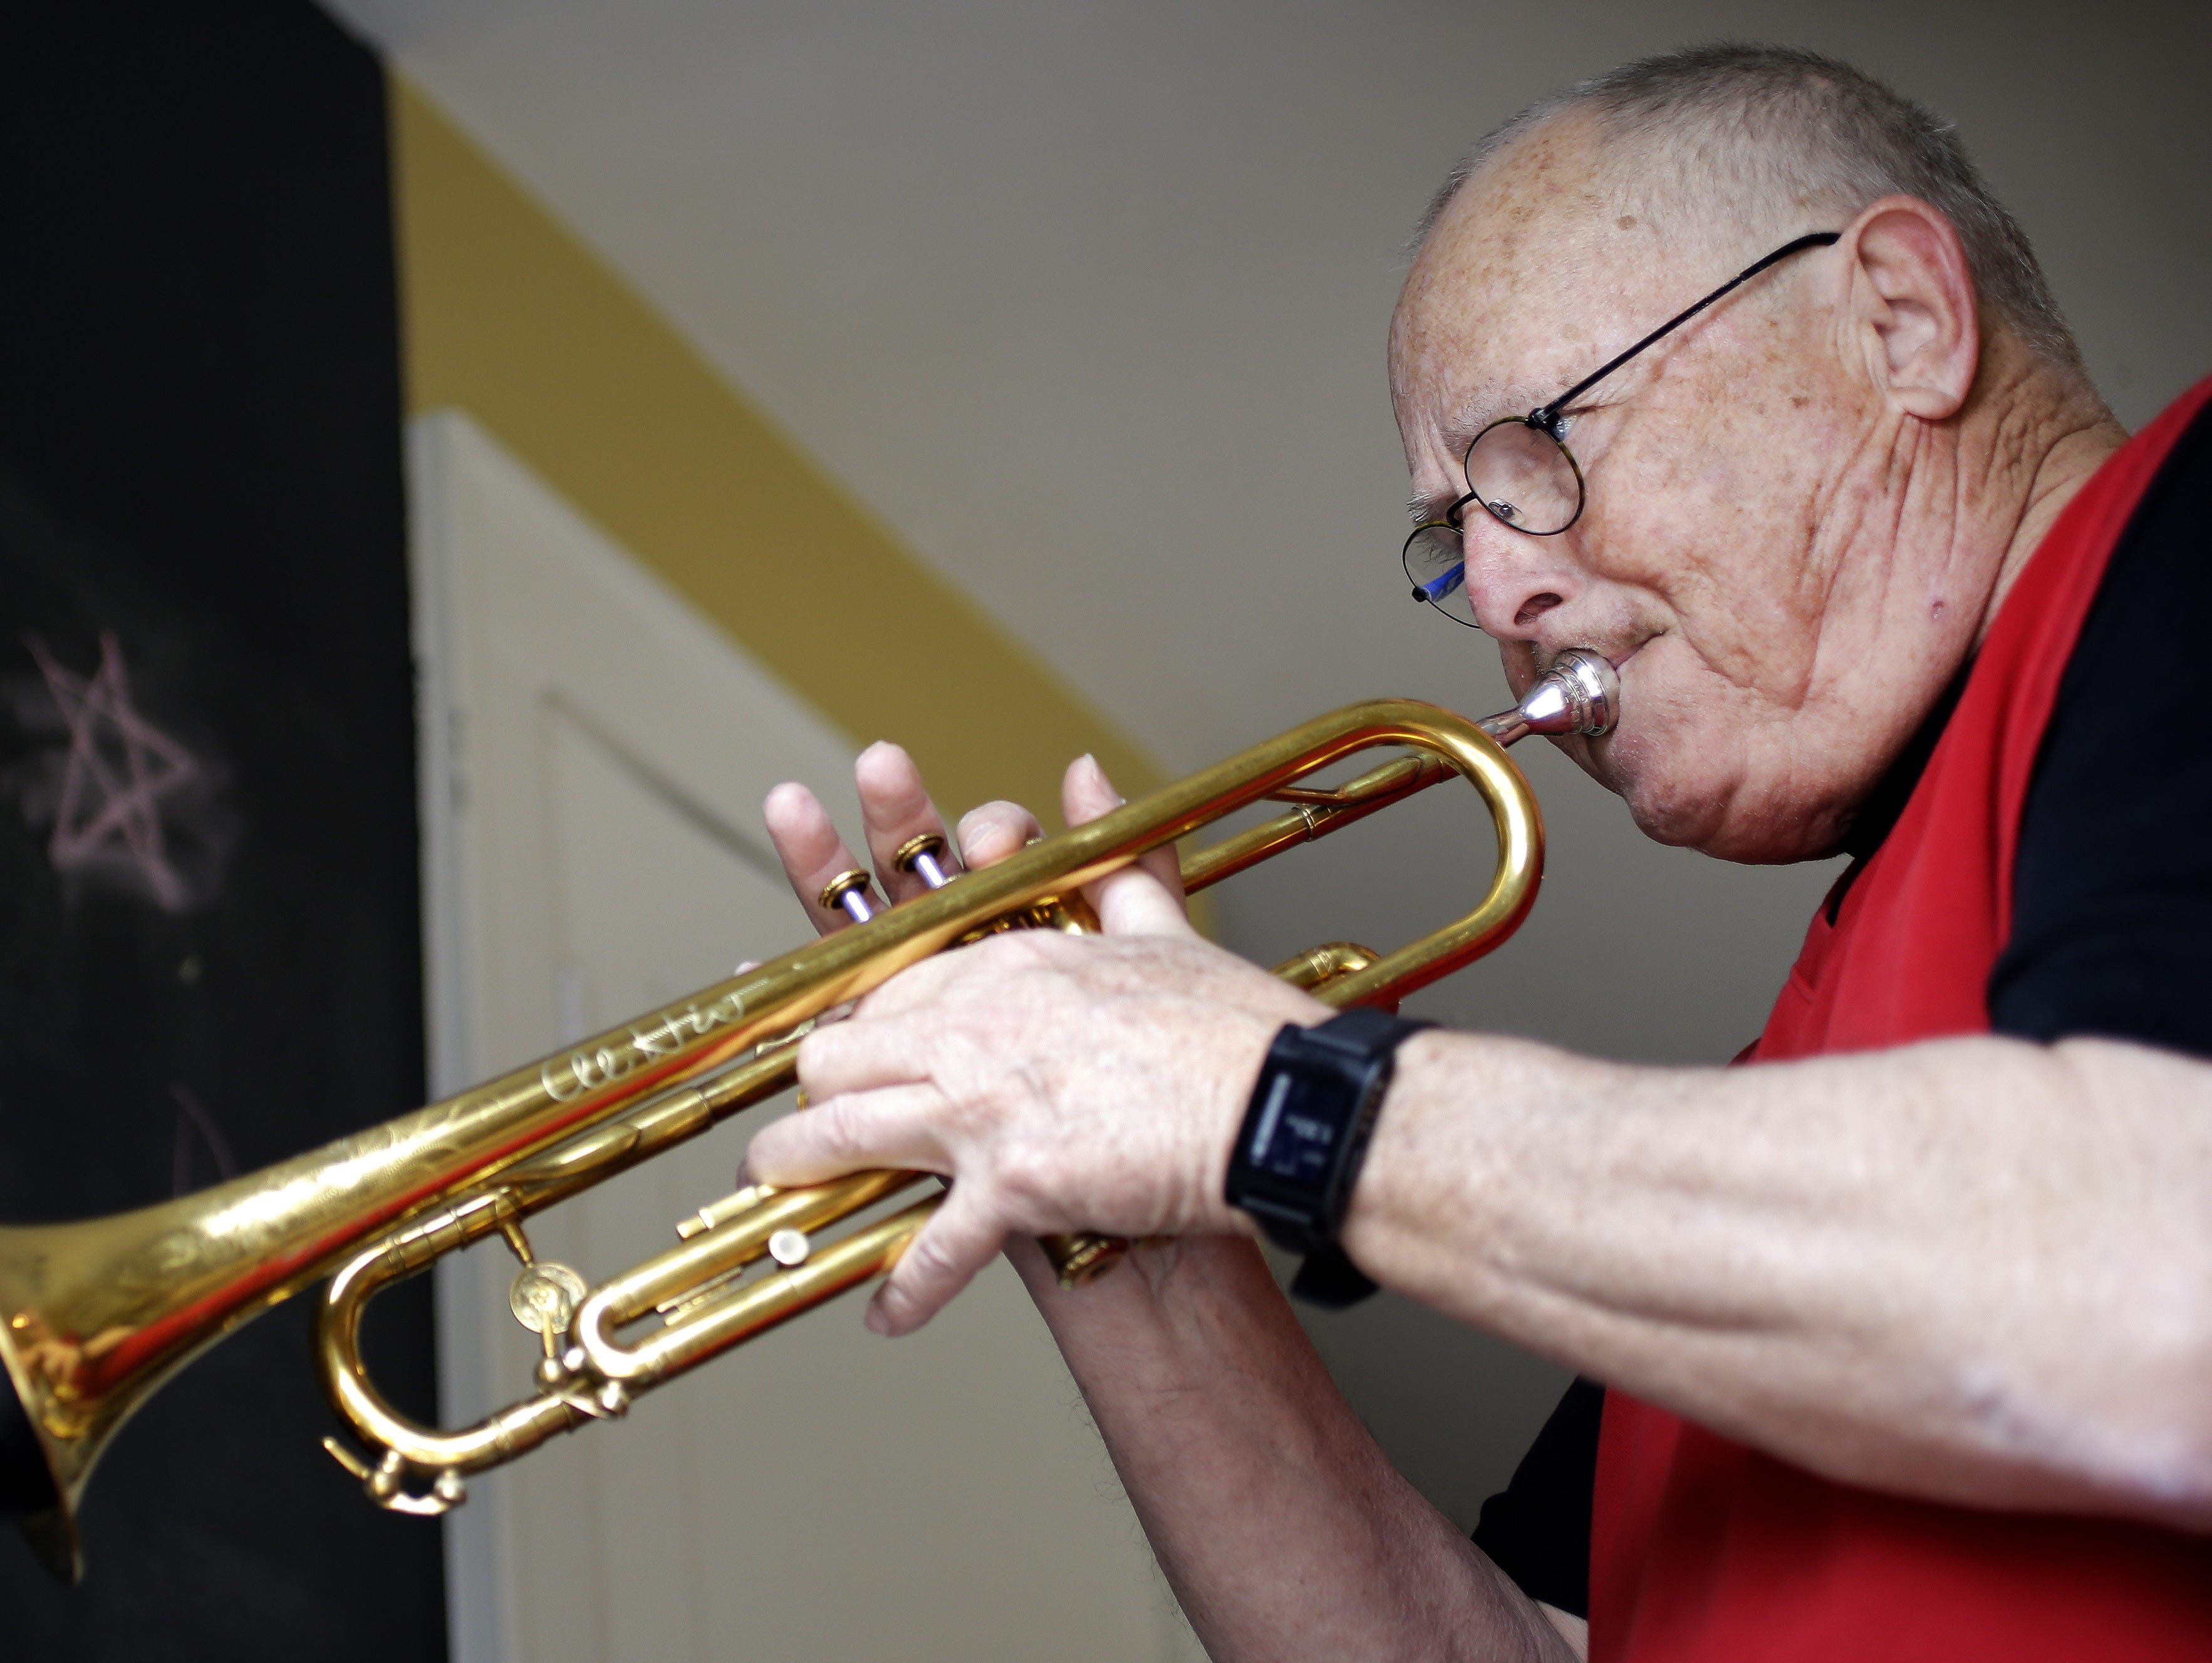 Clyde Peach plays the trumpet inside his kitchen studio on April 6, 2016. Peach plays and produces the background music for his business' YouTube videos.